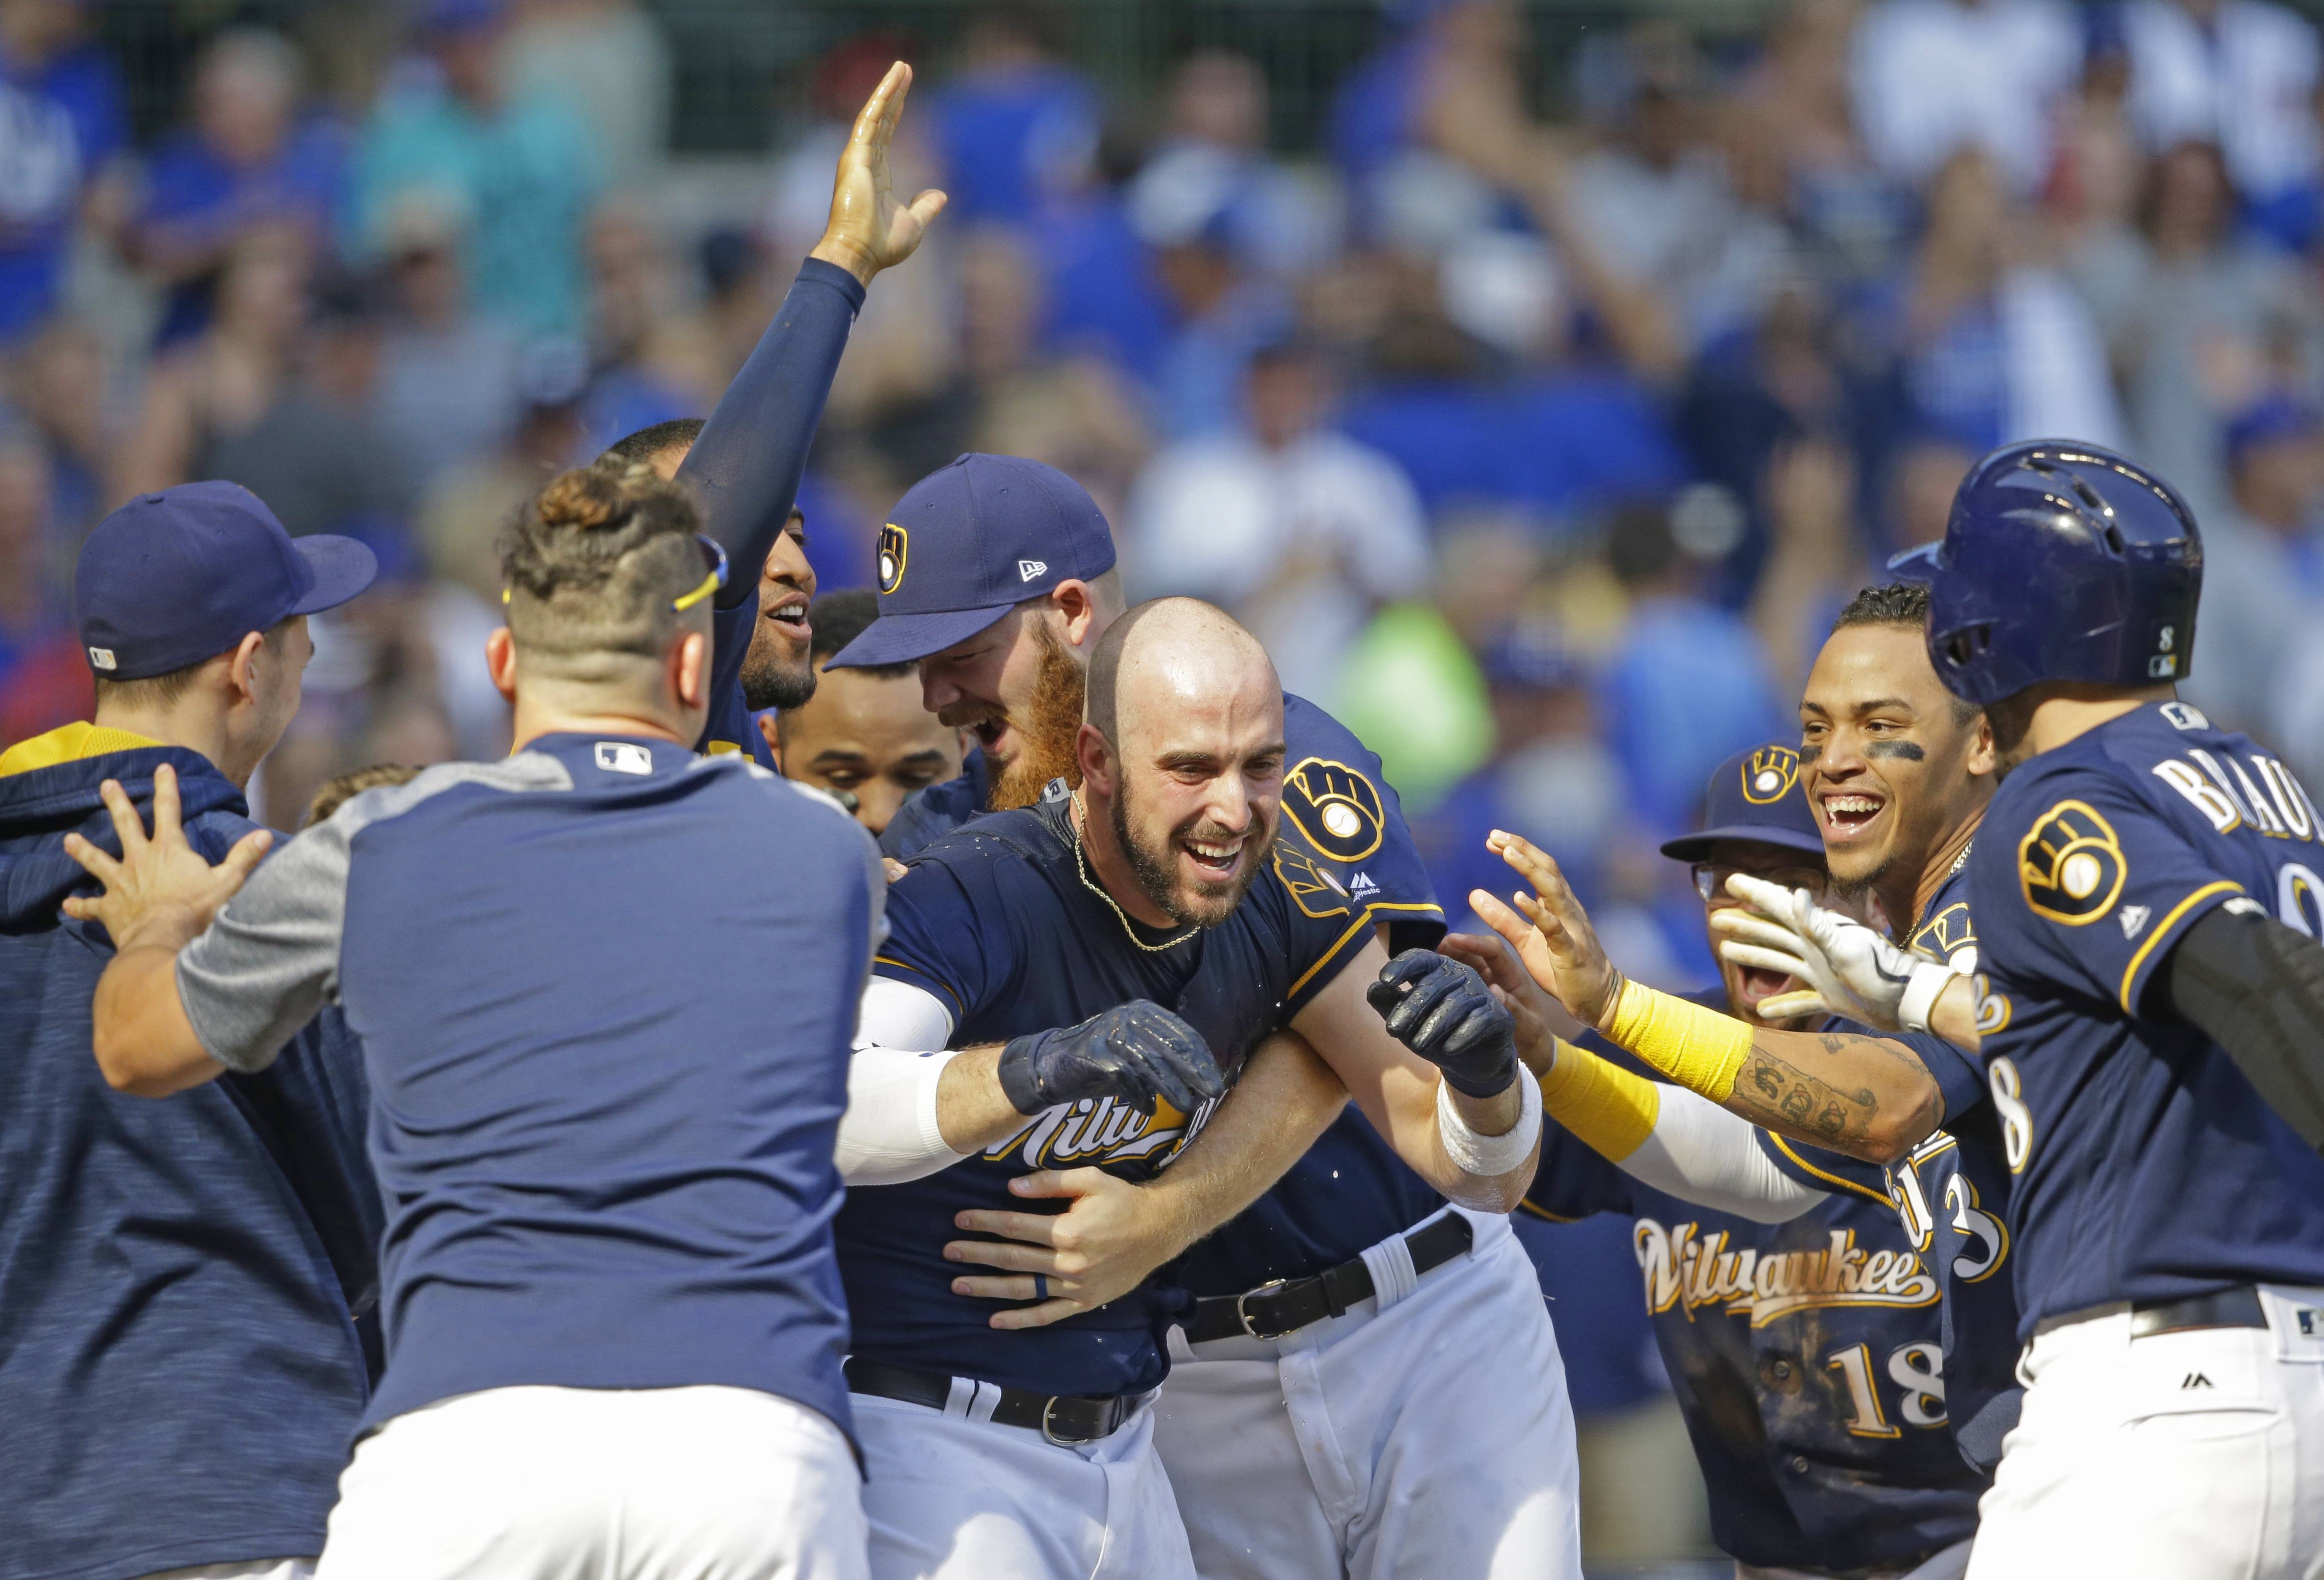 Milwaukee Brewers' Travis Shaw, center, is congratulated by teammates after a two-run game winning home run against the Chicago Cubs in the 10th inning Saturday, Sept. 23, 2017, in Milwaukee. The Brewers won 4-3 in 10 innings.